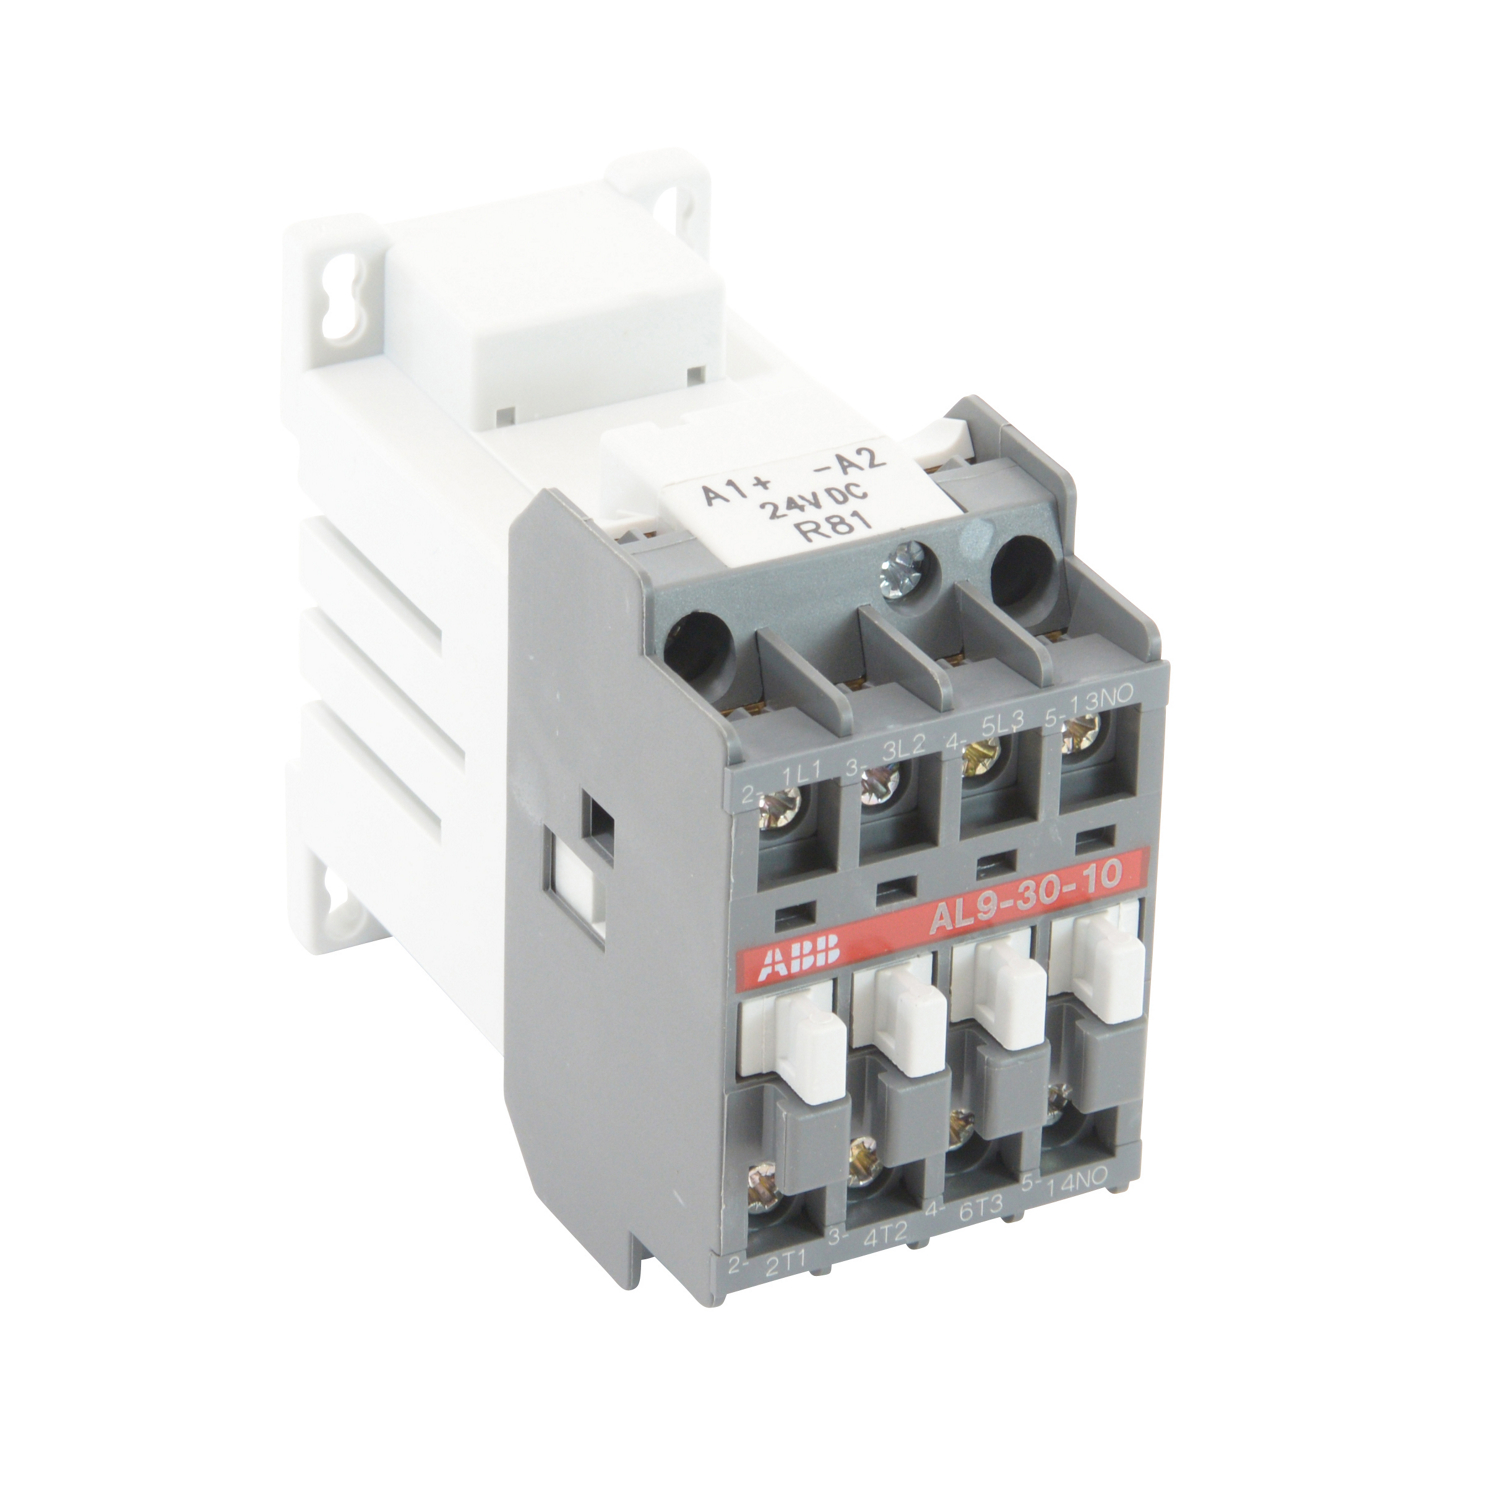 Contactor Wiring Diagram With 24 Volt Abb Contactor Wiring Diagram